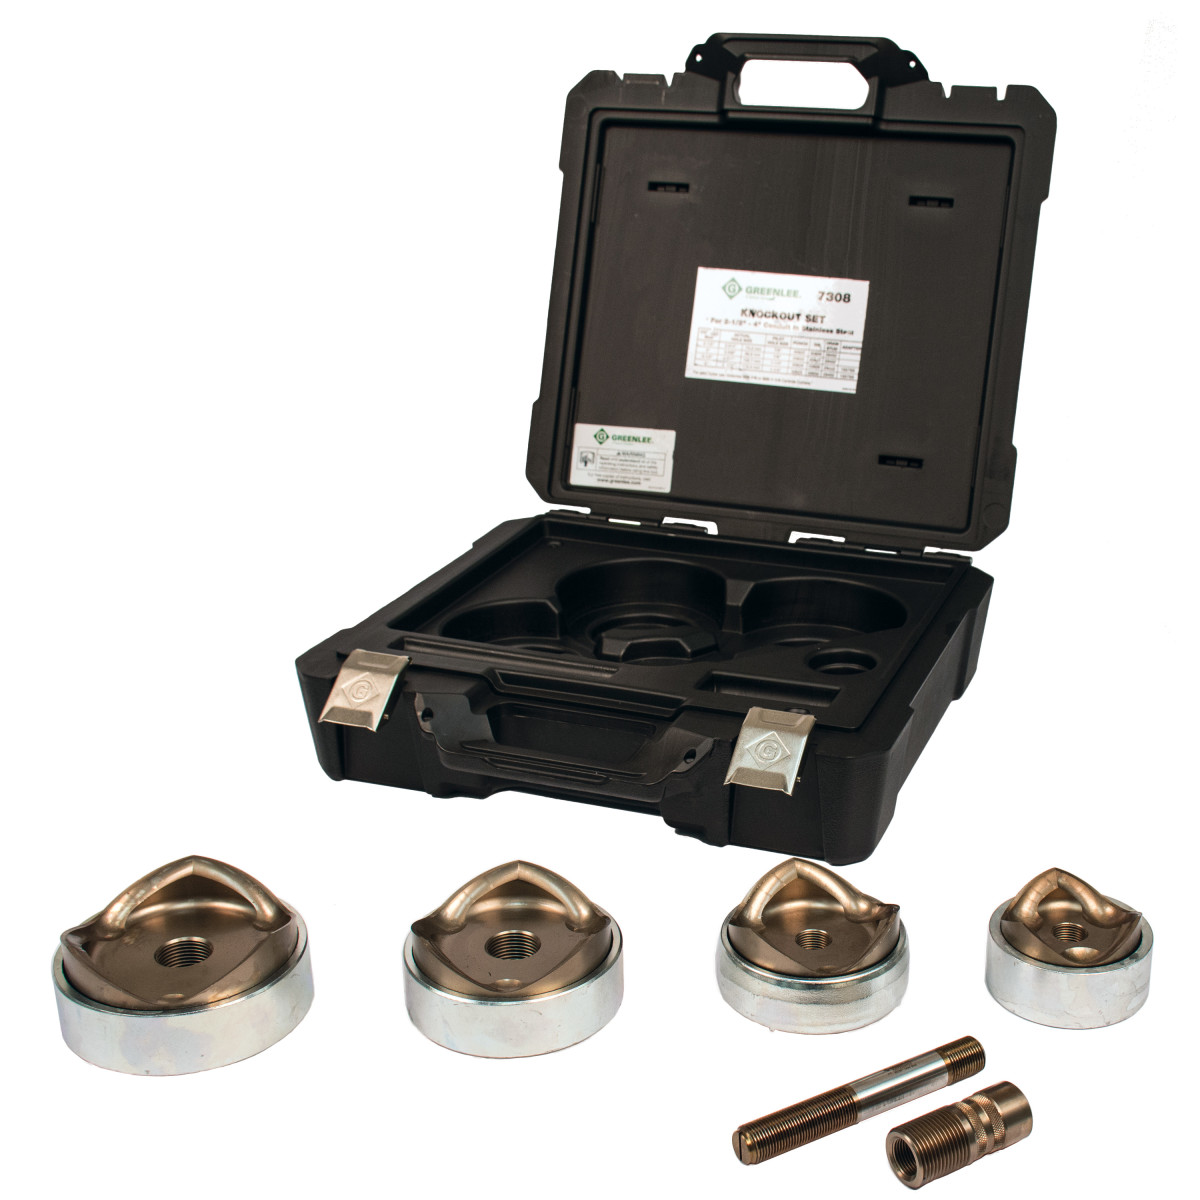 "Greenlee 7308 Punch & Die Knockout Kit for Stainless Steel (2-1/2"", 3"" & 4"" Conduit)"